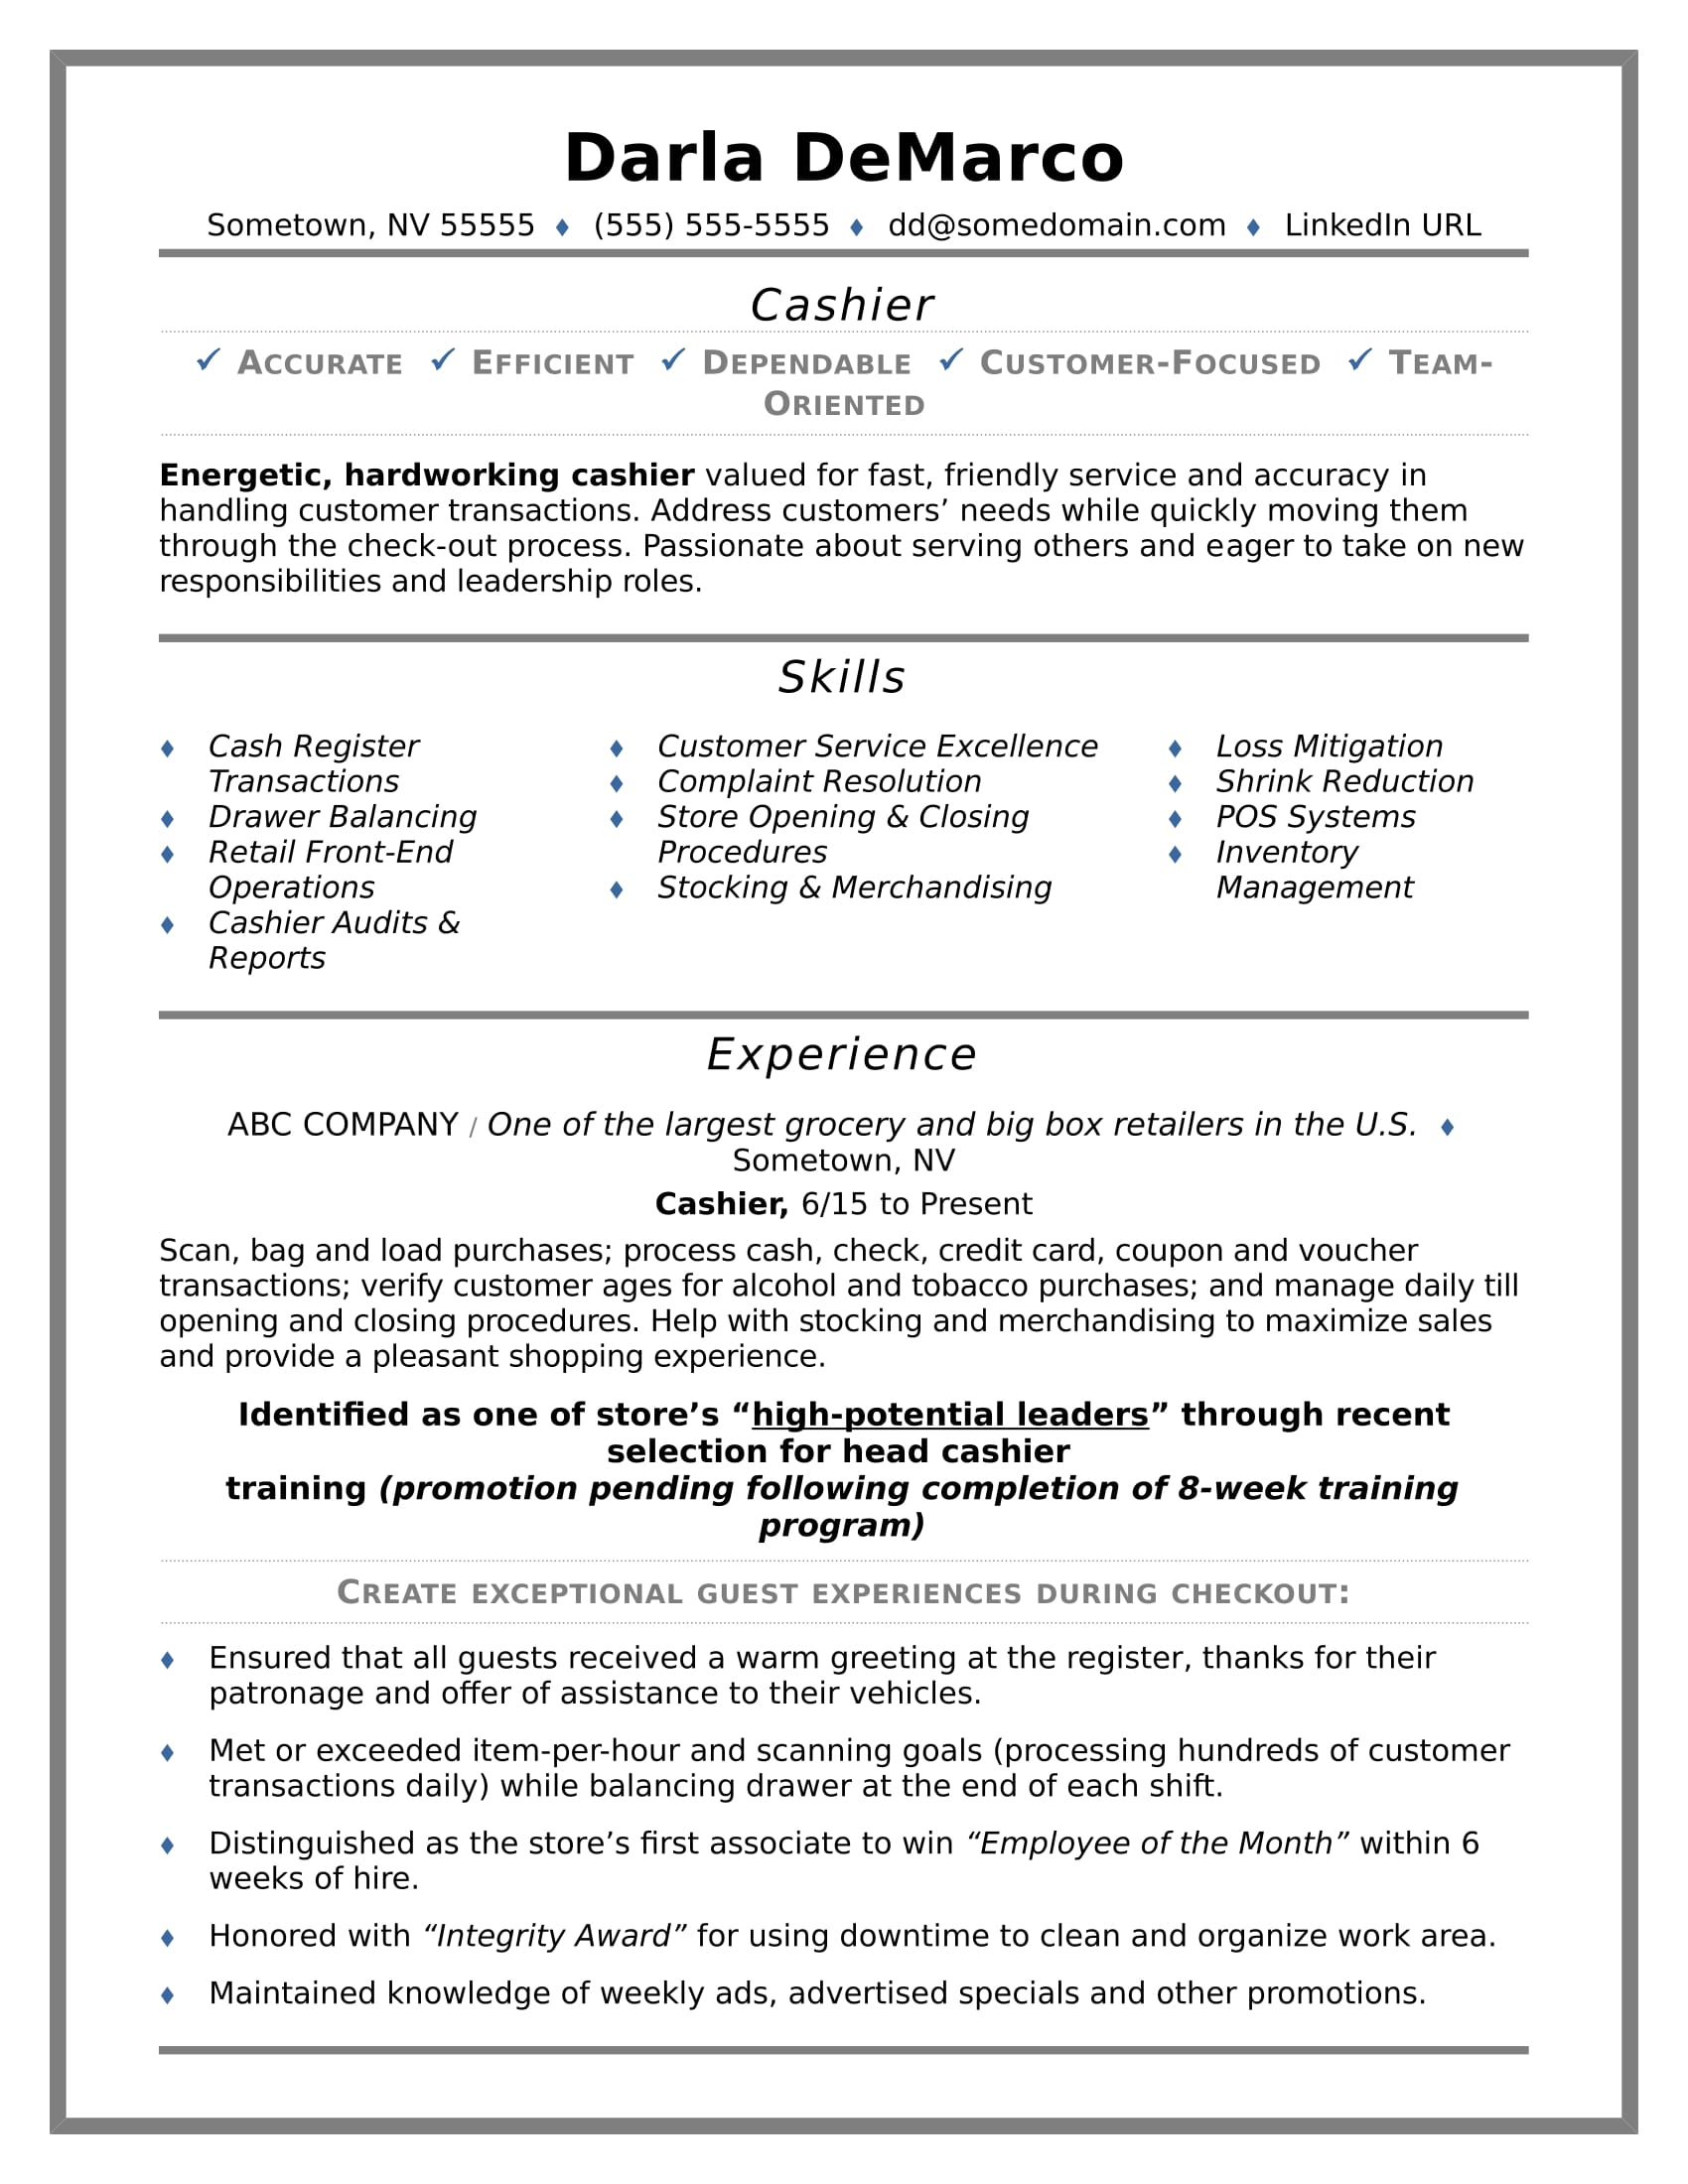 cashier resume sample - Sample Resume For A Cashier At Grocery Store